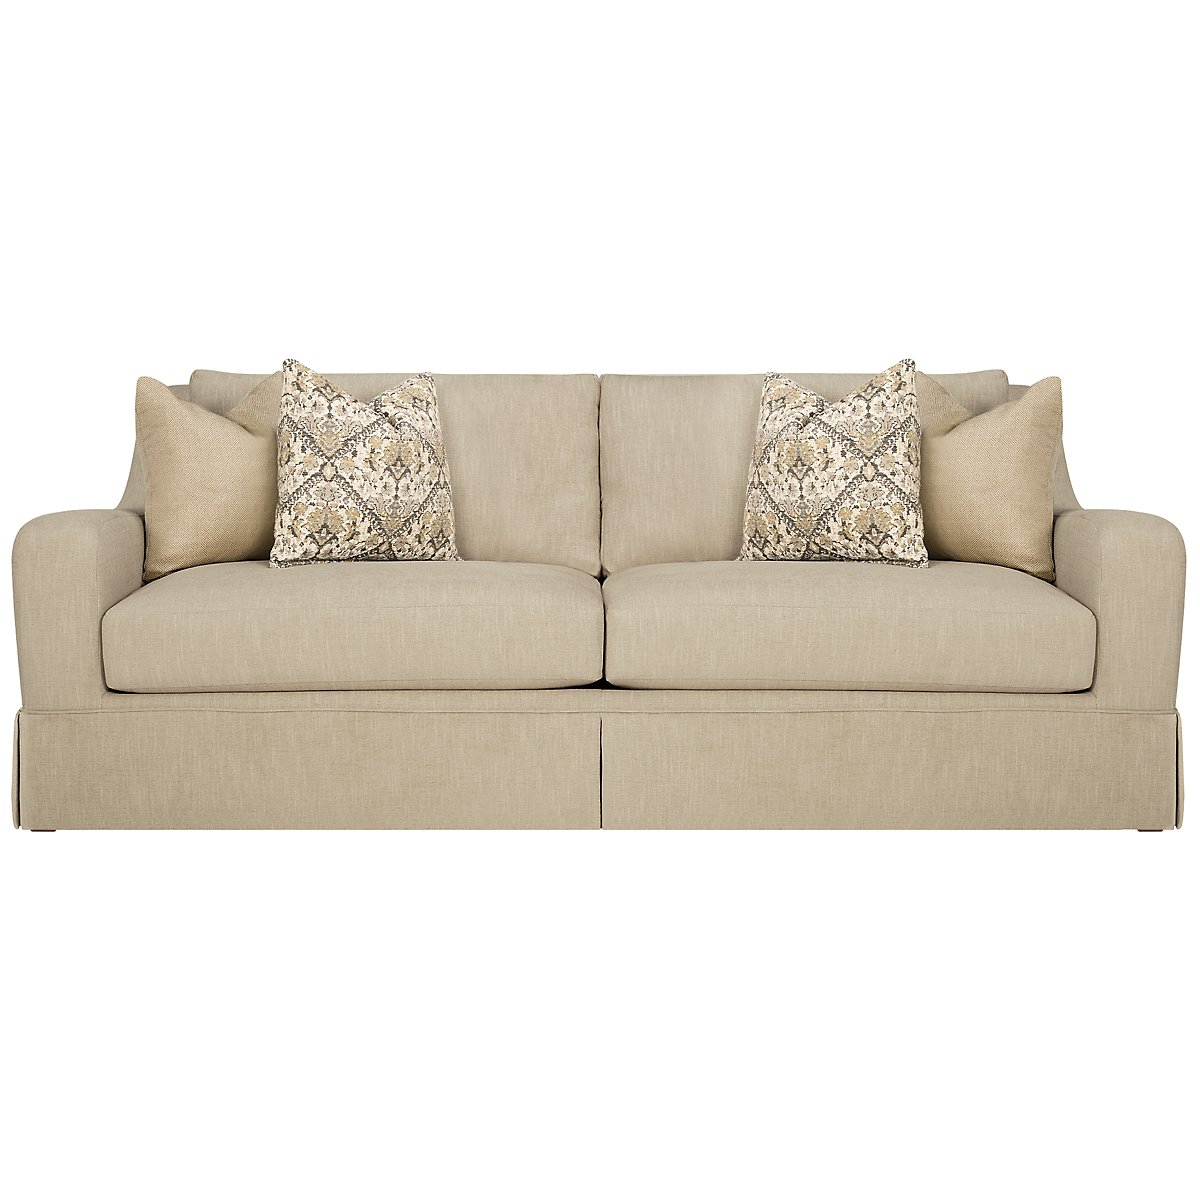 Hallie Beige Fabric Sofa